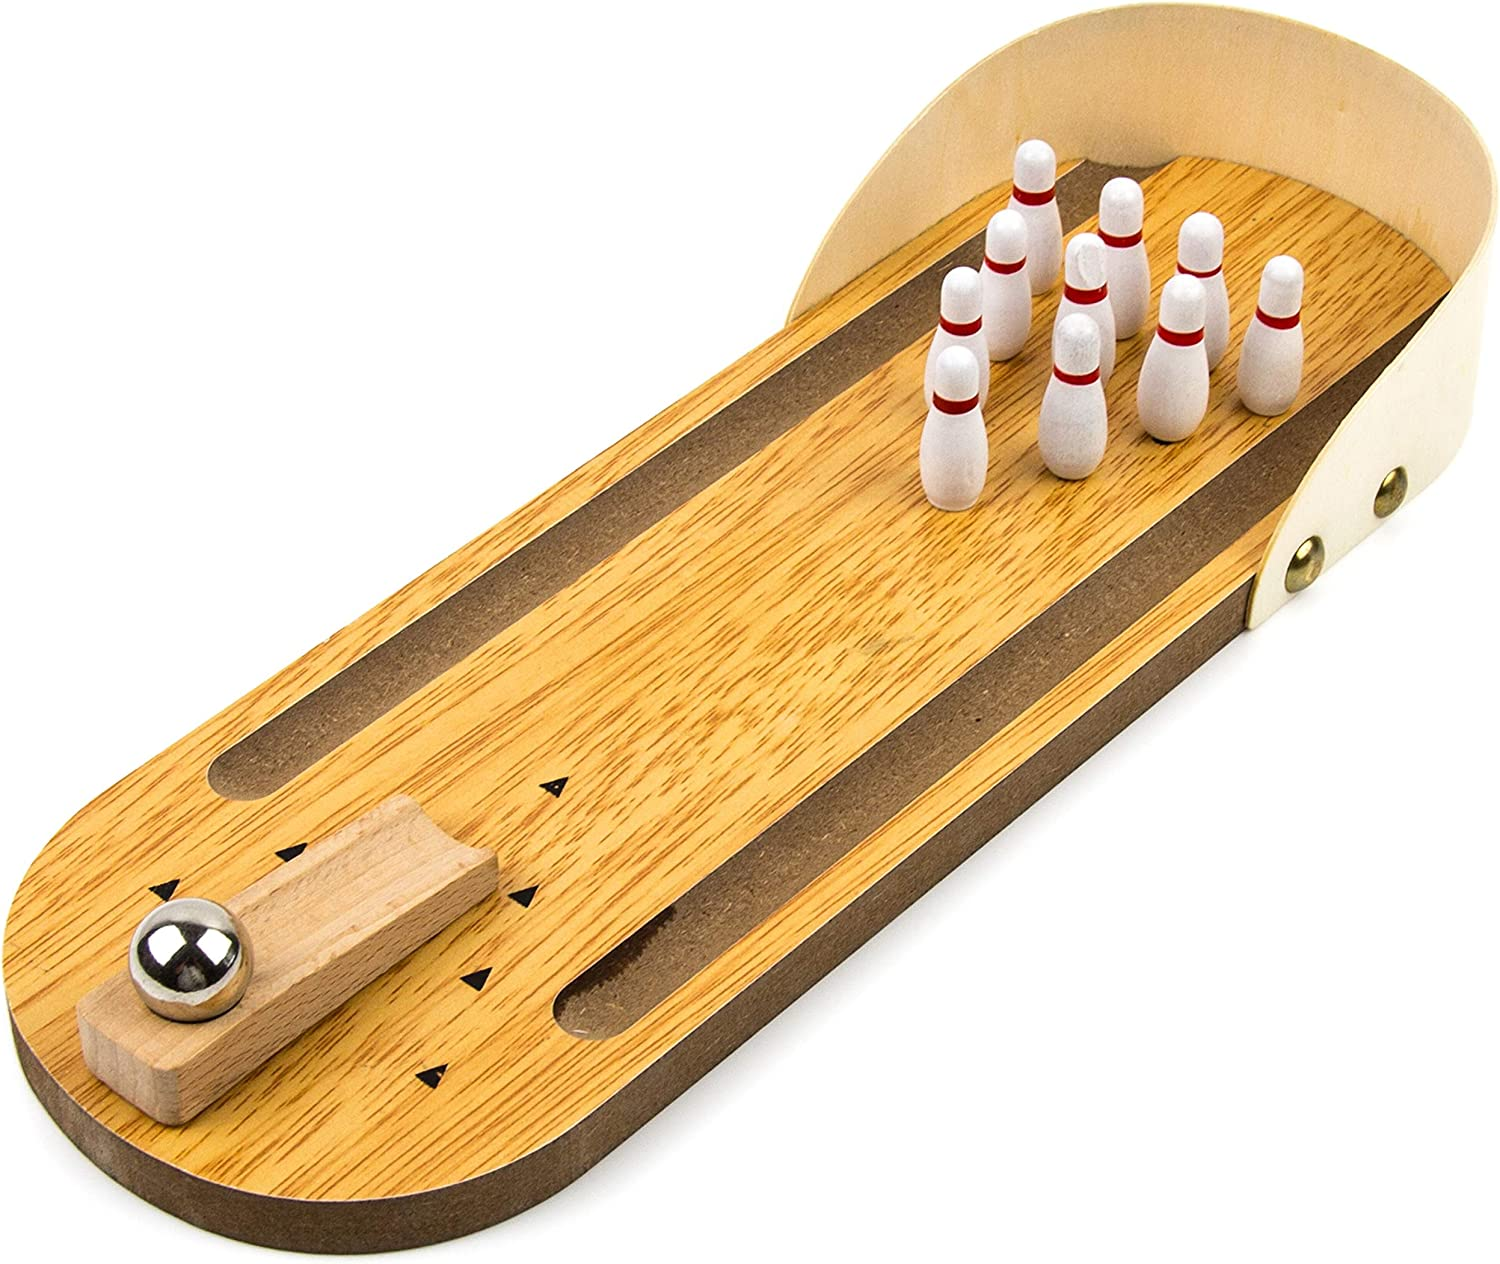 online shopping Toysery Wooden Mini Bowling Game - Material Premium for Ki Fashionable Safe